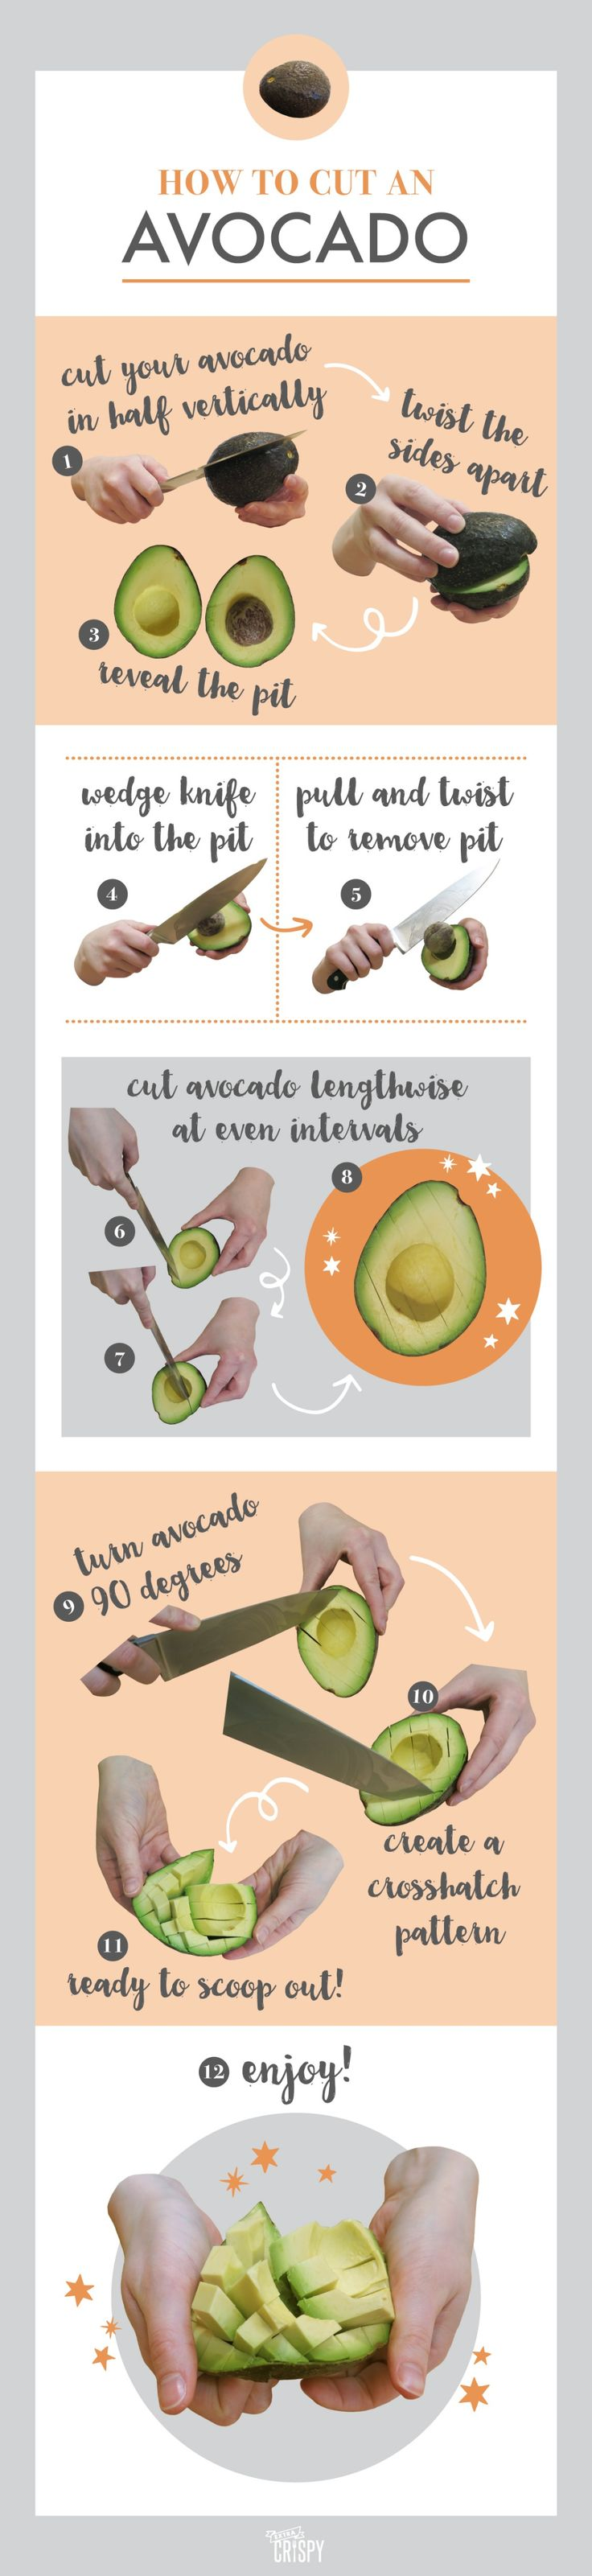 If you don't feel confident about your knife skills, learning how to slice an avocado can be scary—especially since there's now all these plenty of news stories out there about the rise in gruesome avocado-related hand injuries. All you want, though, is to eat some avocado, maybe even on a nice slice of toast. So how do you cut an avocado without cutting yourself?